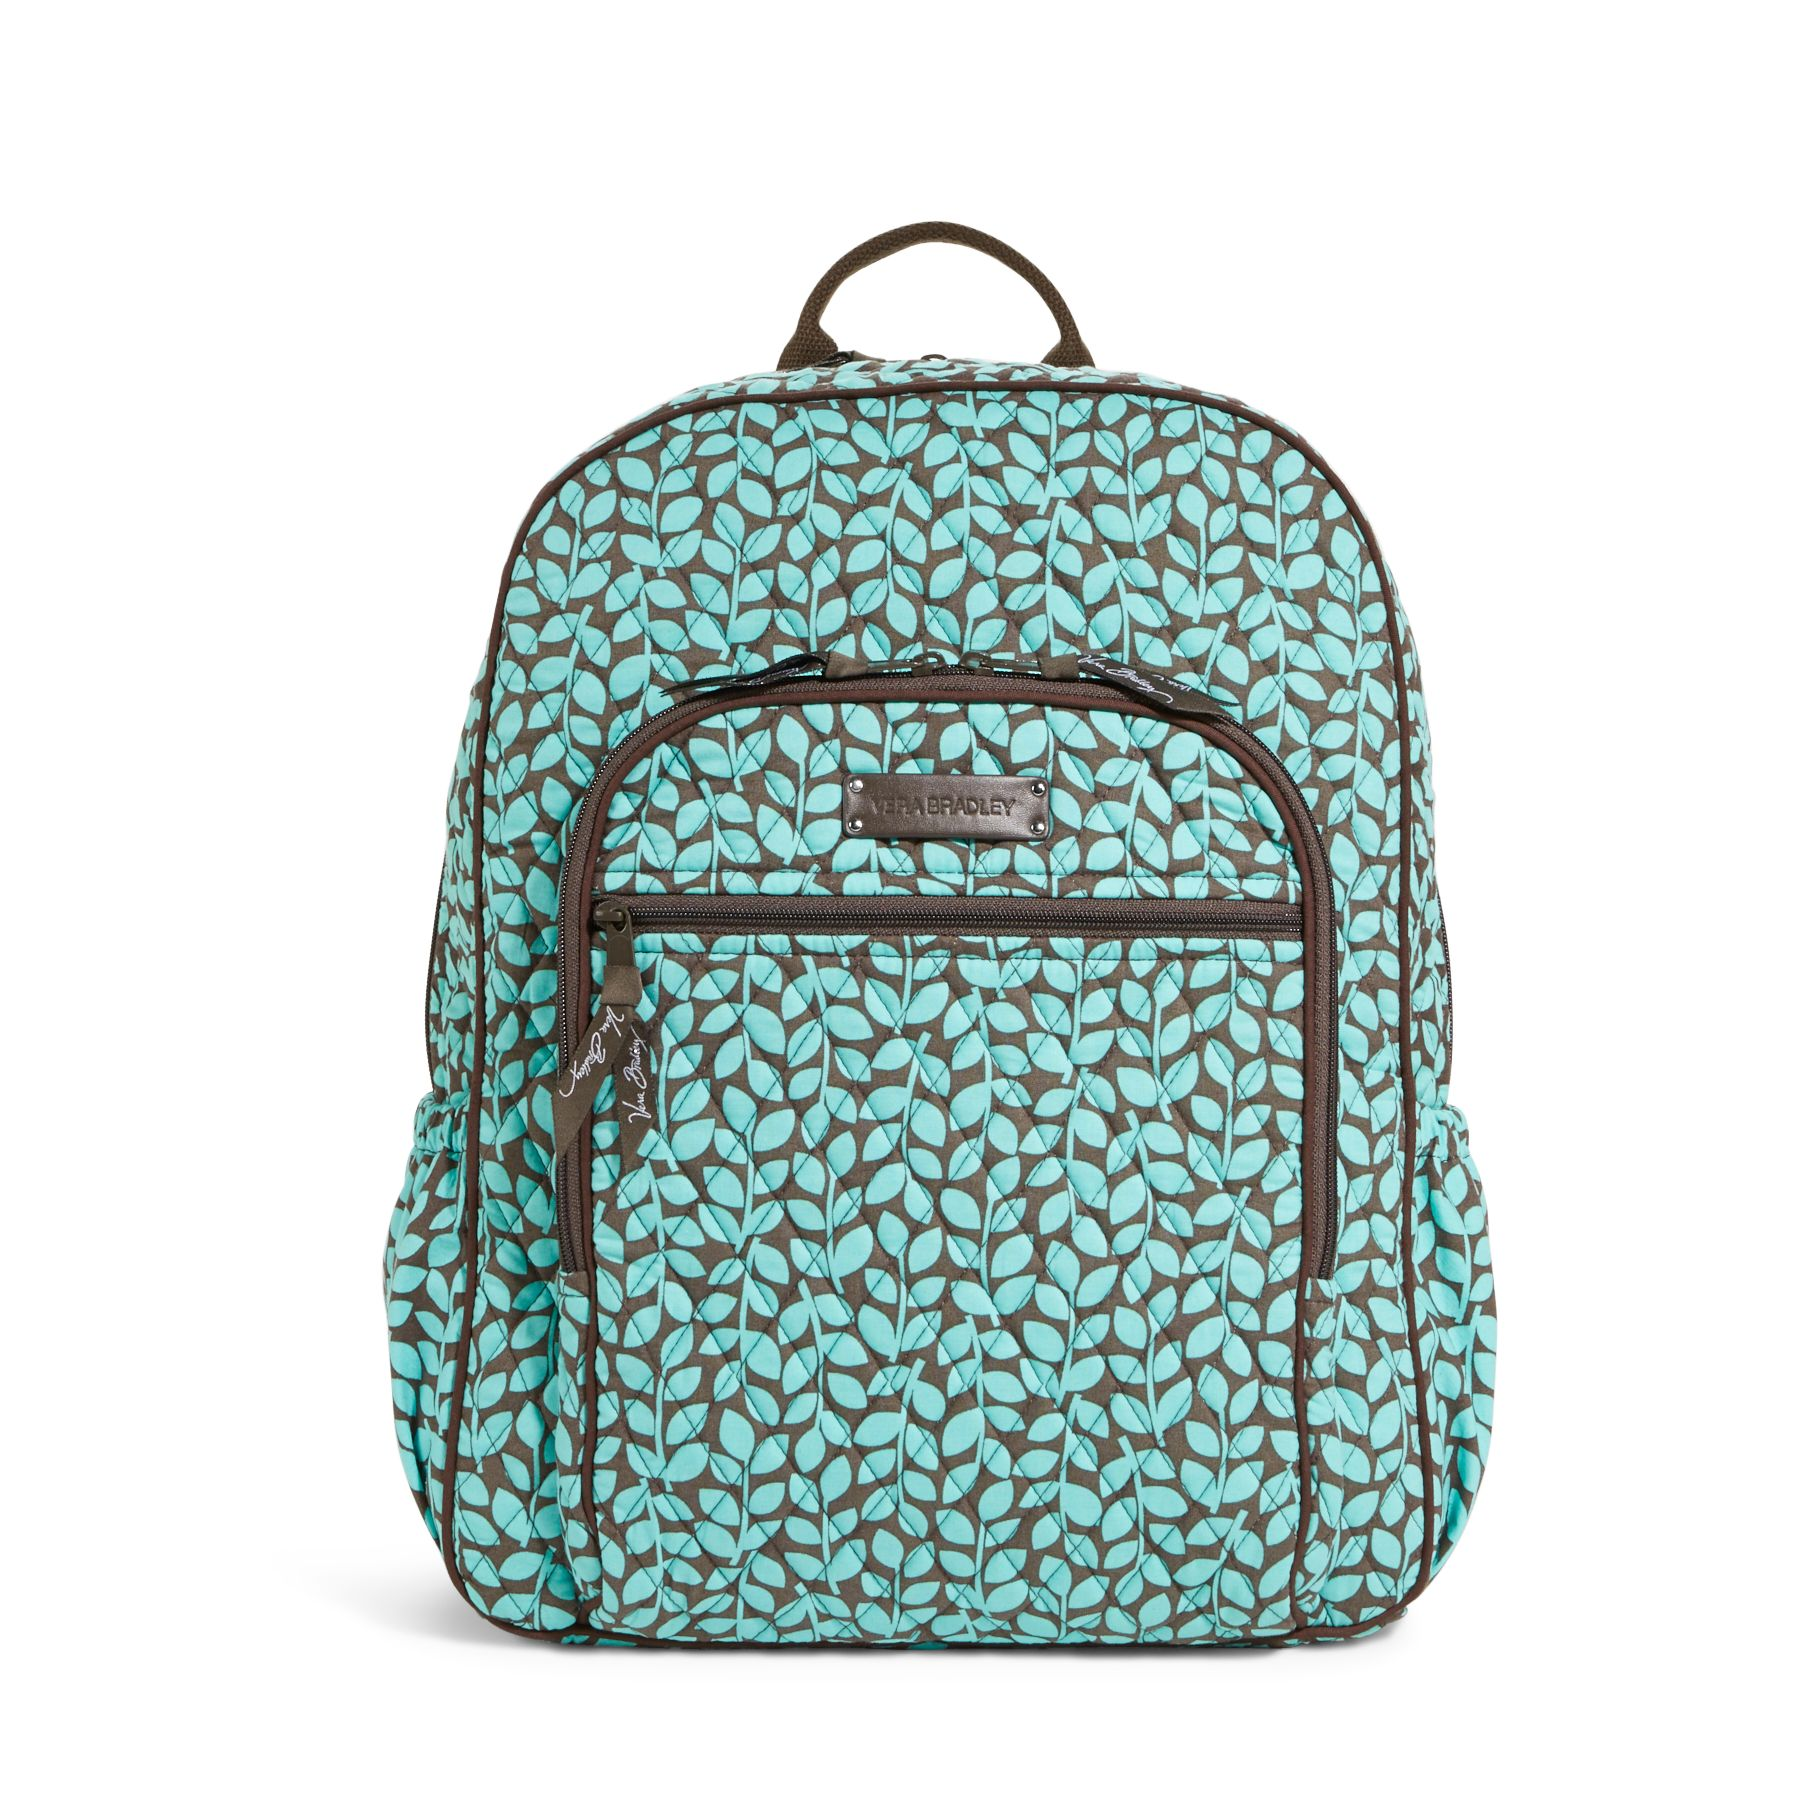 With all the size of a serious backpack and all the organization a student could need, the Campus Backpack has school covered. The main compartment features two slip pockets, two pen slips and an ID window--all the necessities are organized and secure.